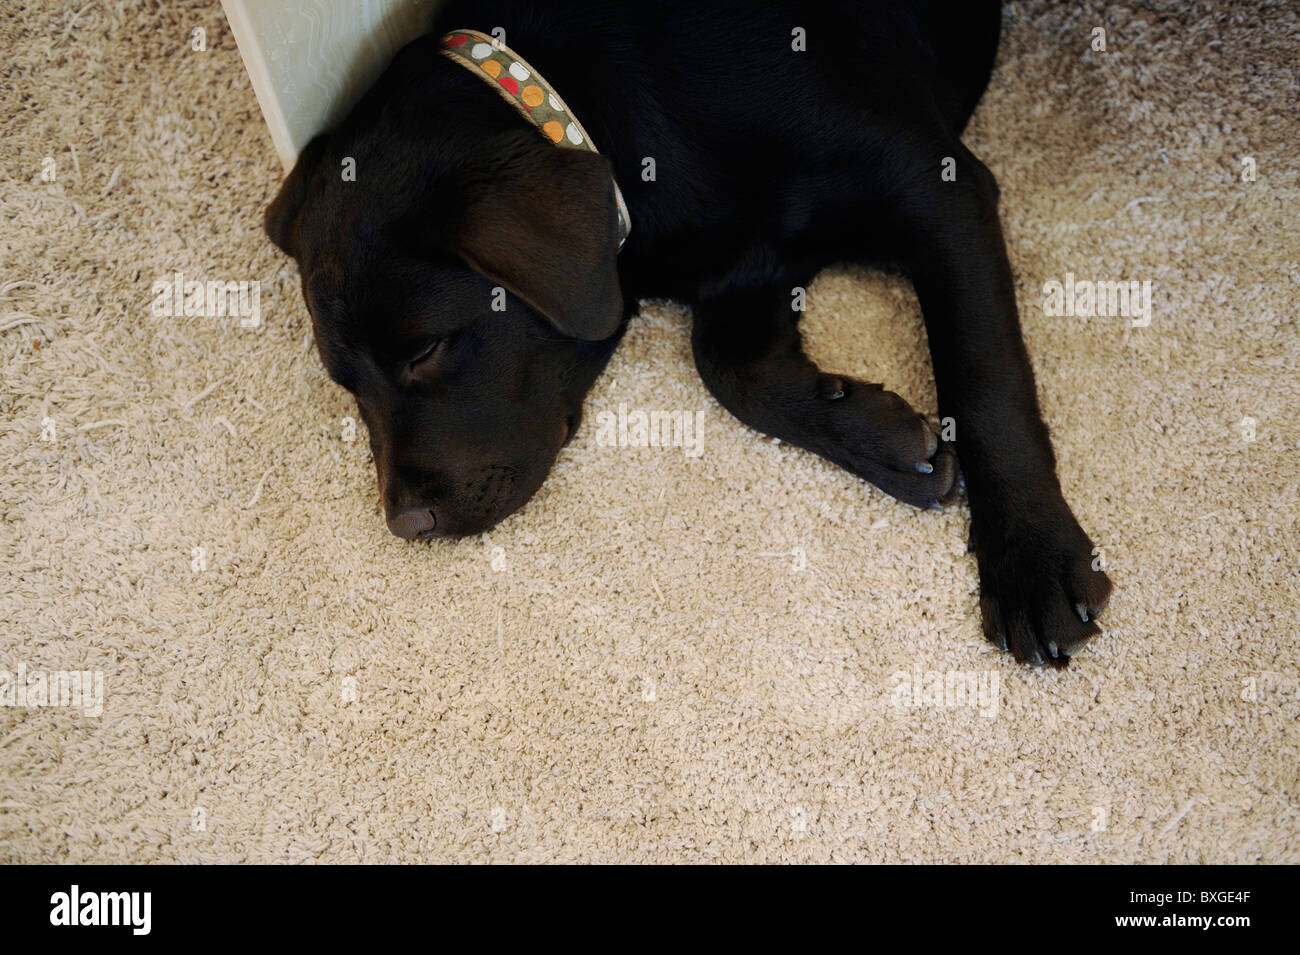 Chocolate Brown Labrador puppy dog sleeping on carpet - Stock Image